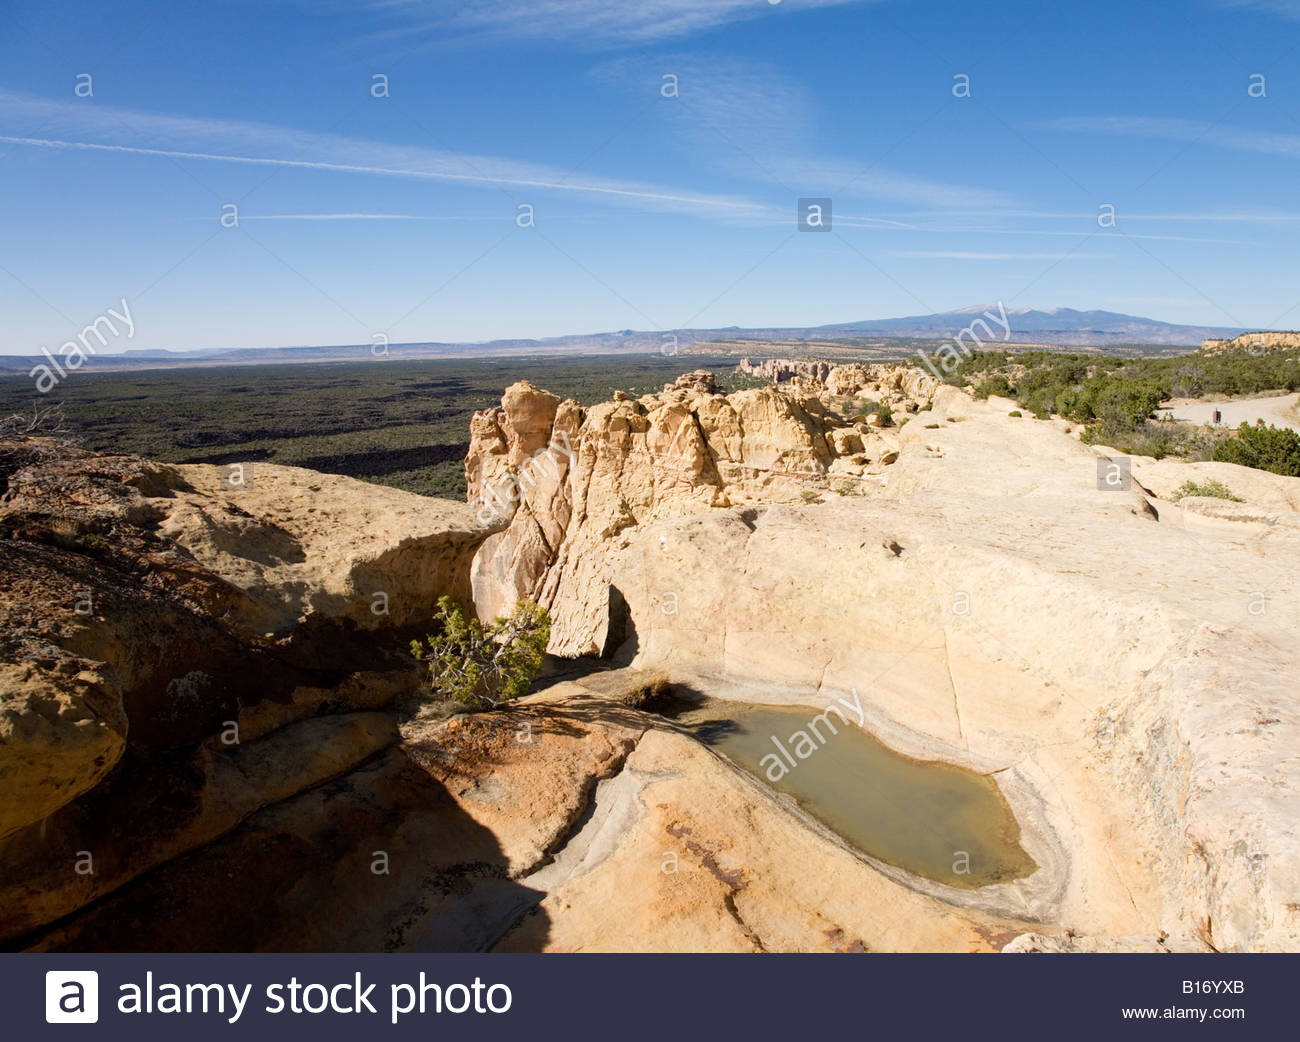 Water pool tinajas Sandstone Bluffs Overlook El Malpais National Monument New Mexico - Stock Image